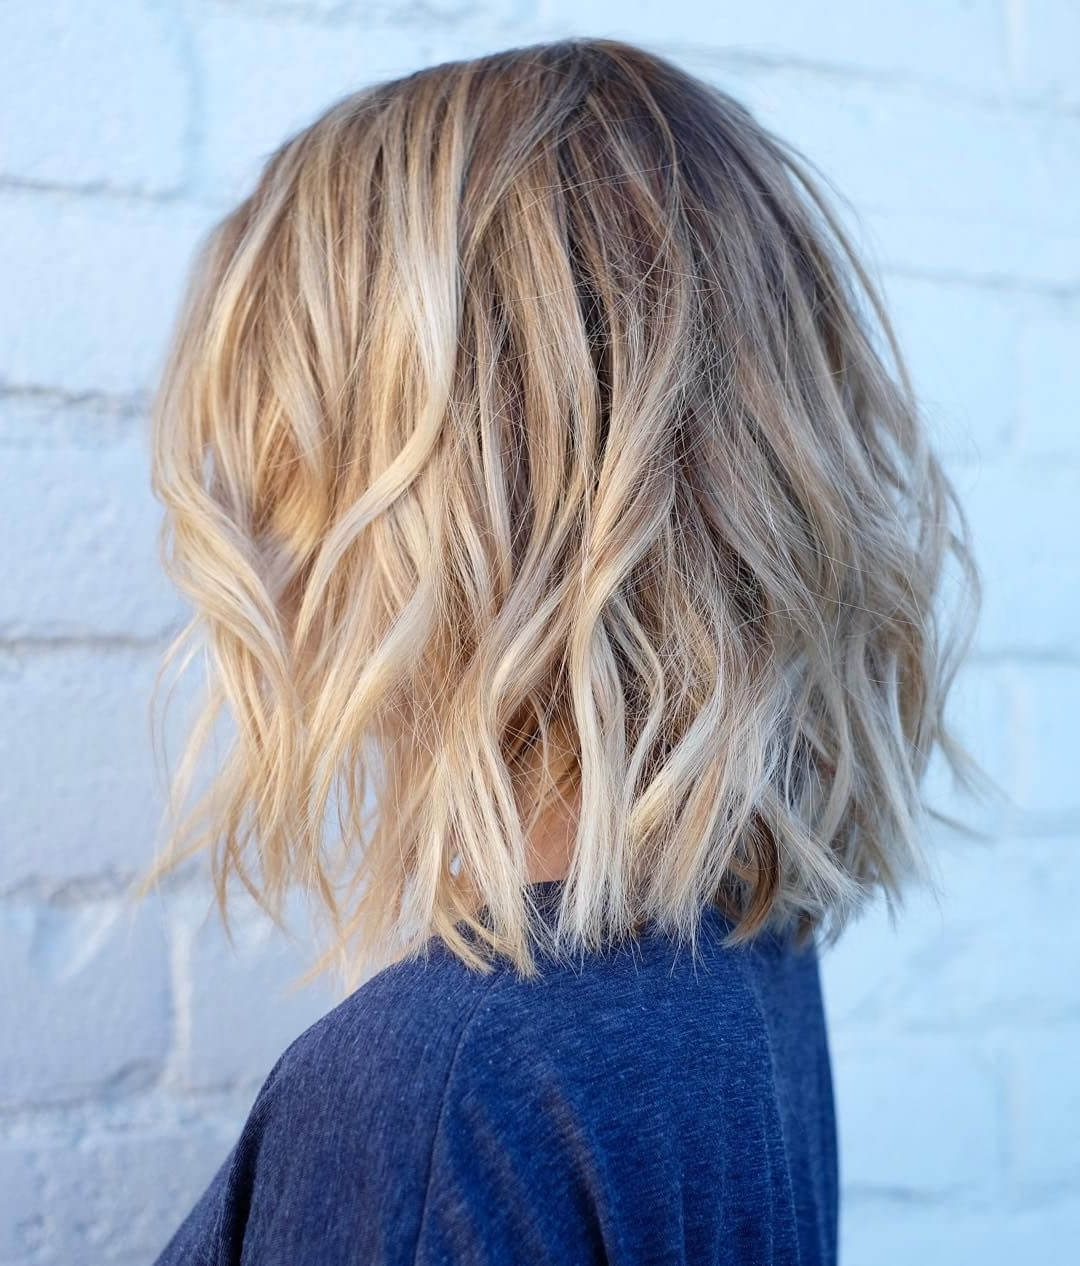 2018 Soft Waves Blonde Hairstyles With Platinum Tips In 50 Fresh Short Blonde Hair Ideas To Update Your Style In (View 11 of 20)